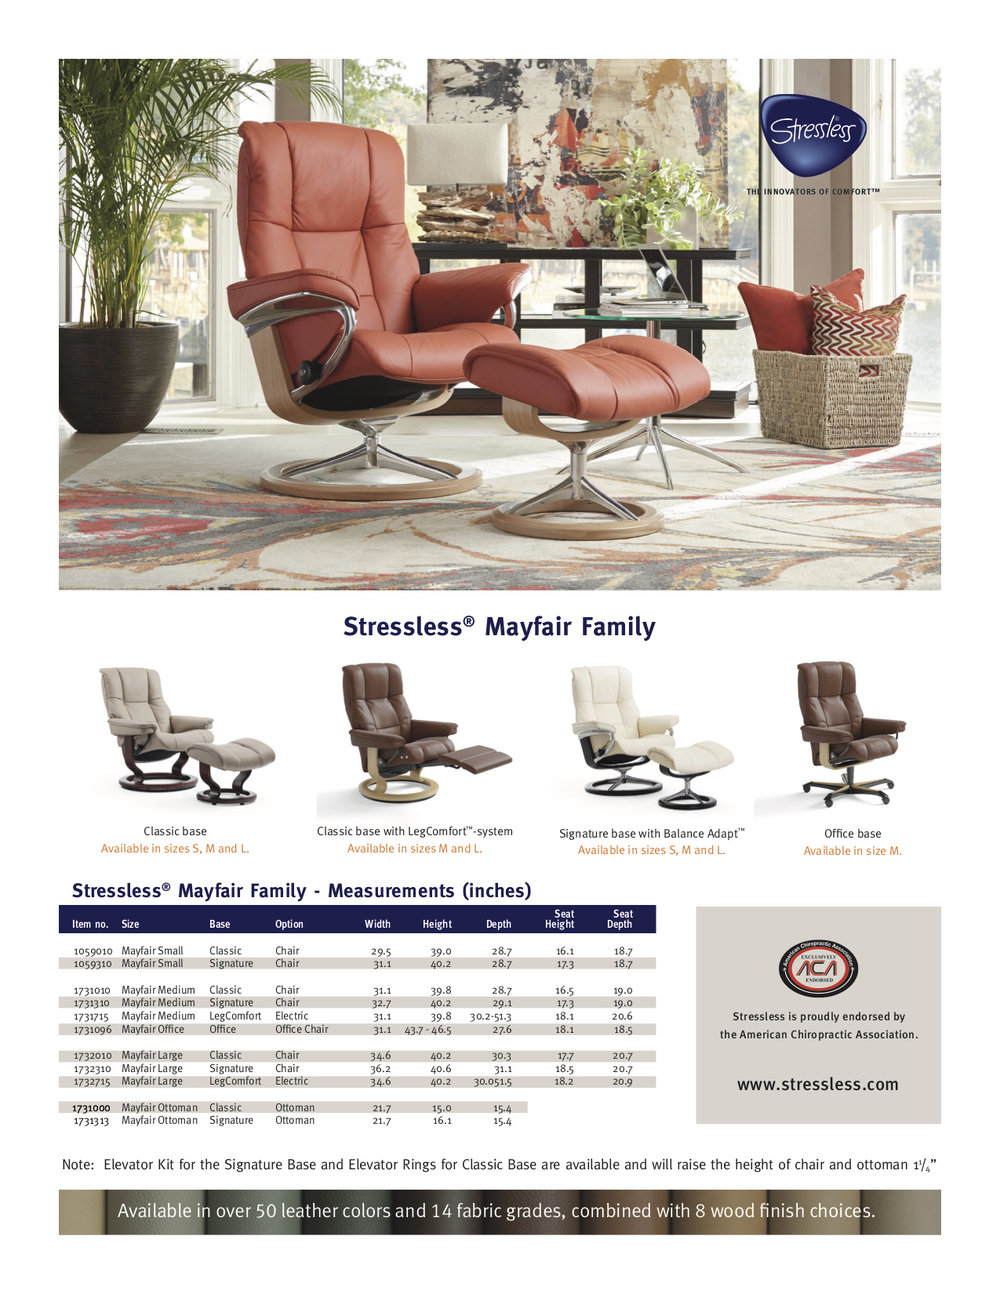 Stressless Mayfair Dimensions